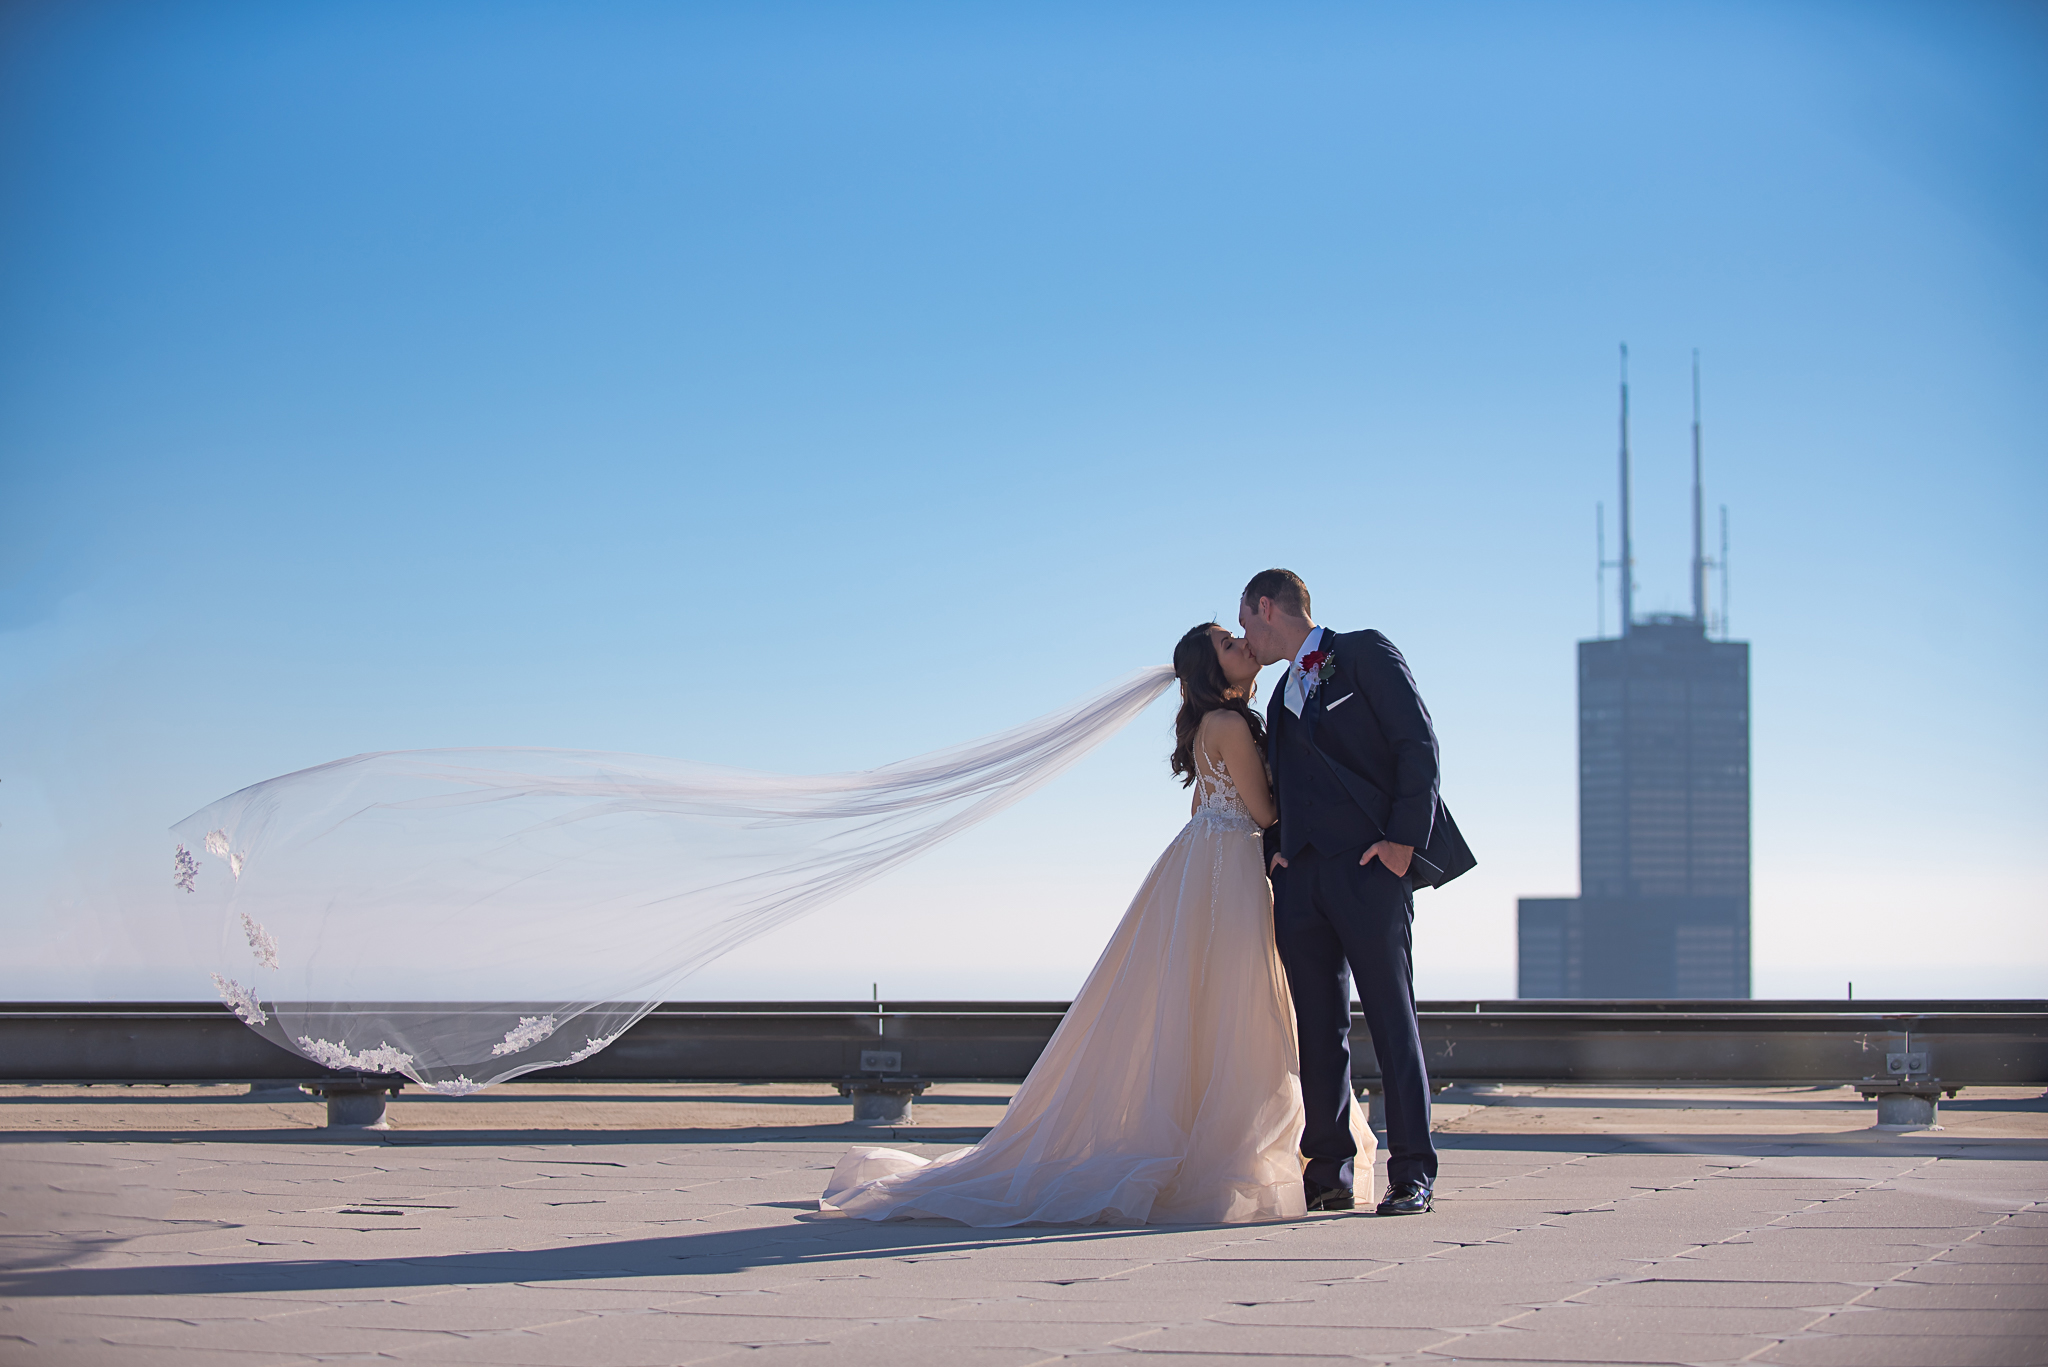 veil shot on top of rooftop with bride and groom